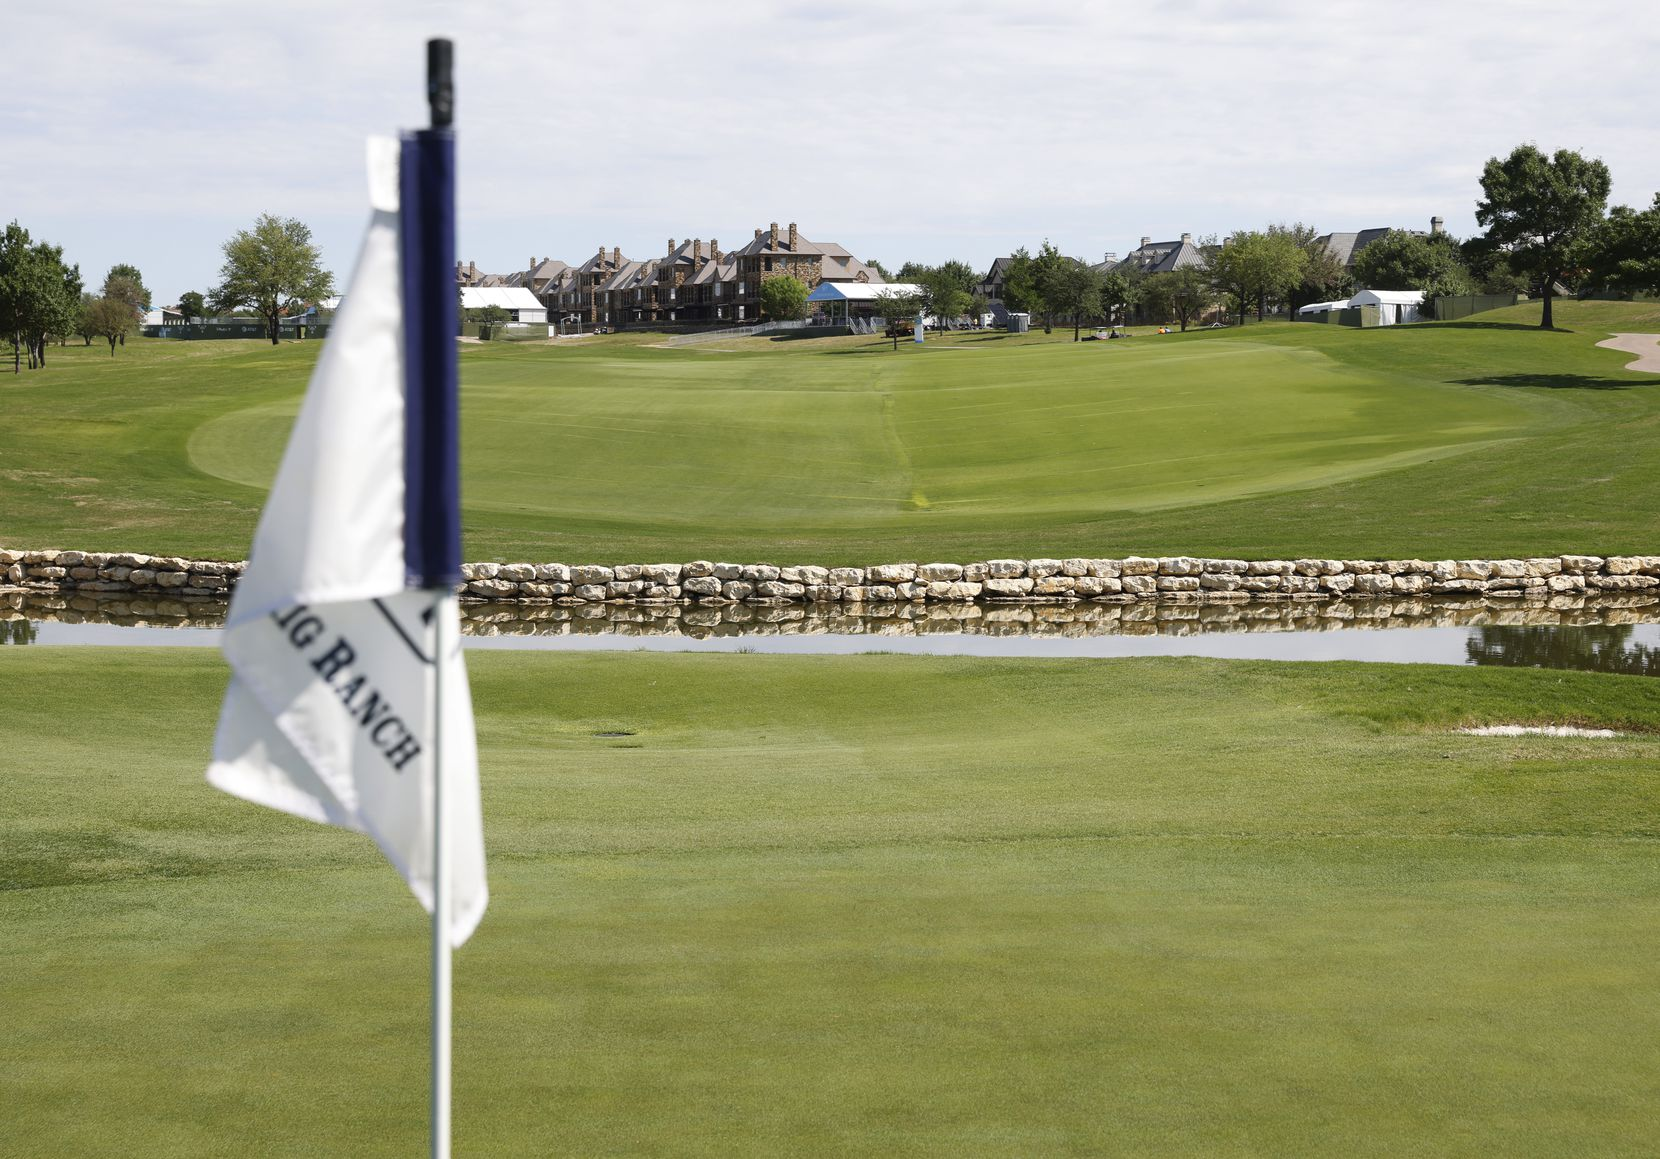 Hole no. 18 at TPC Craig Ranch on Wednesday, May 6, 2021in McKinney, Texas. (Vernon Bryant/The Dallas Morning News)